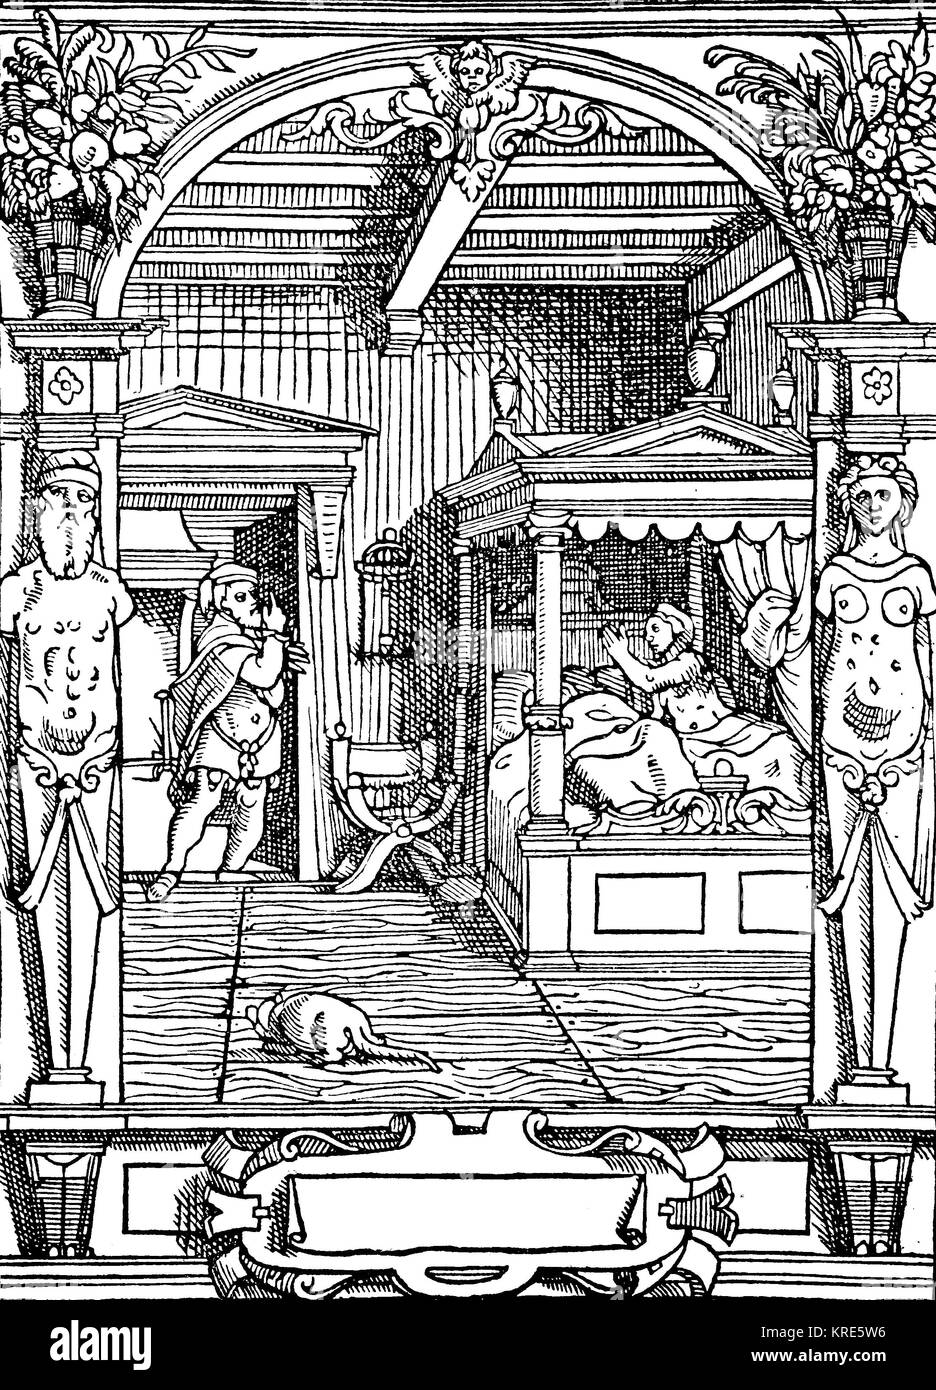 Adultery, illustration of adultery from a 16th century French law book, woman is waiting in bed and waiting for - Stock Image